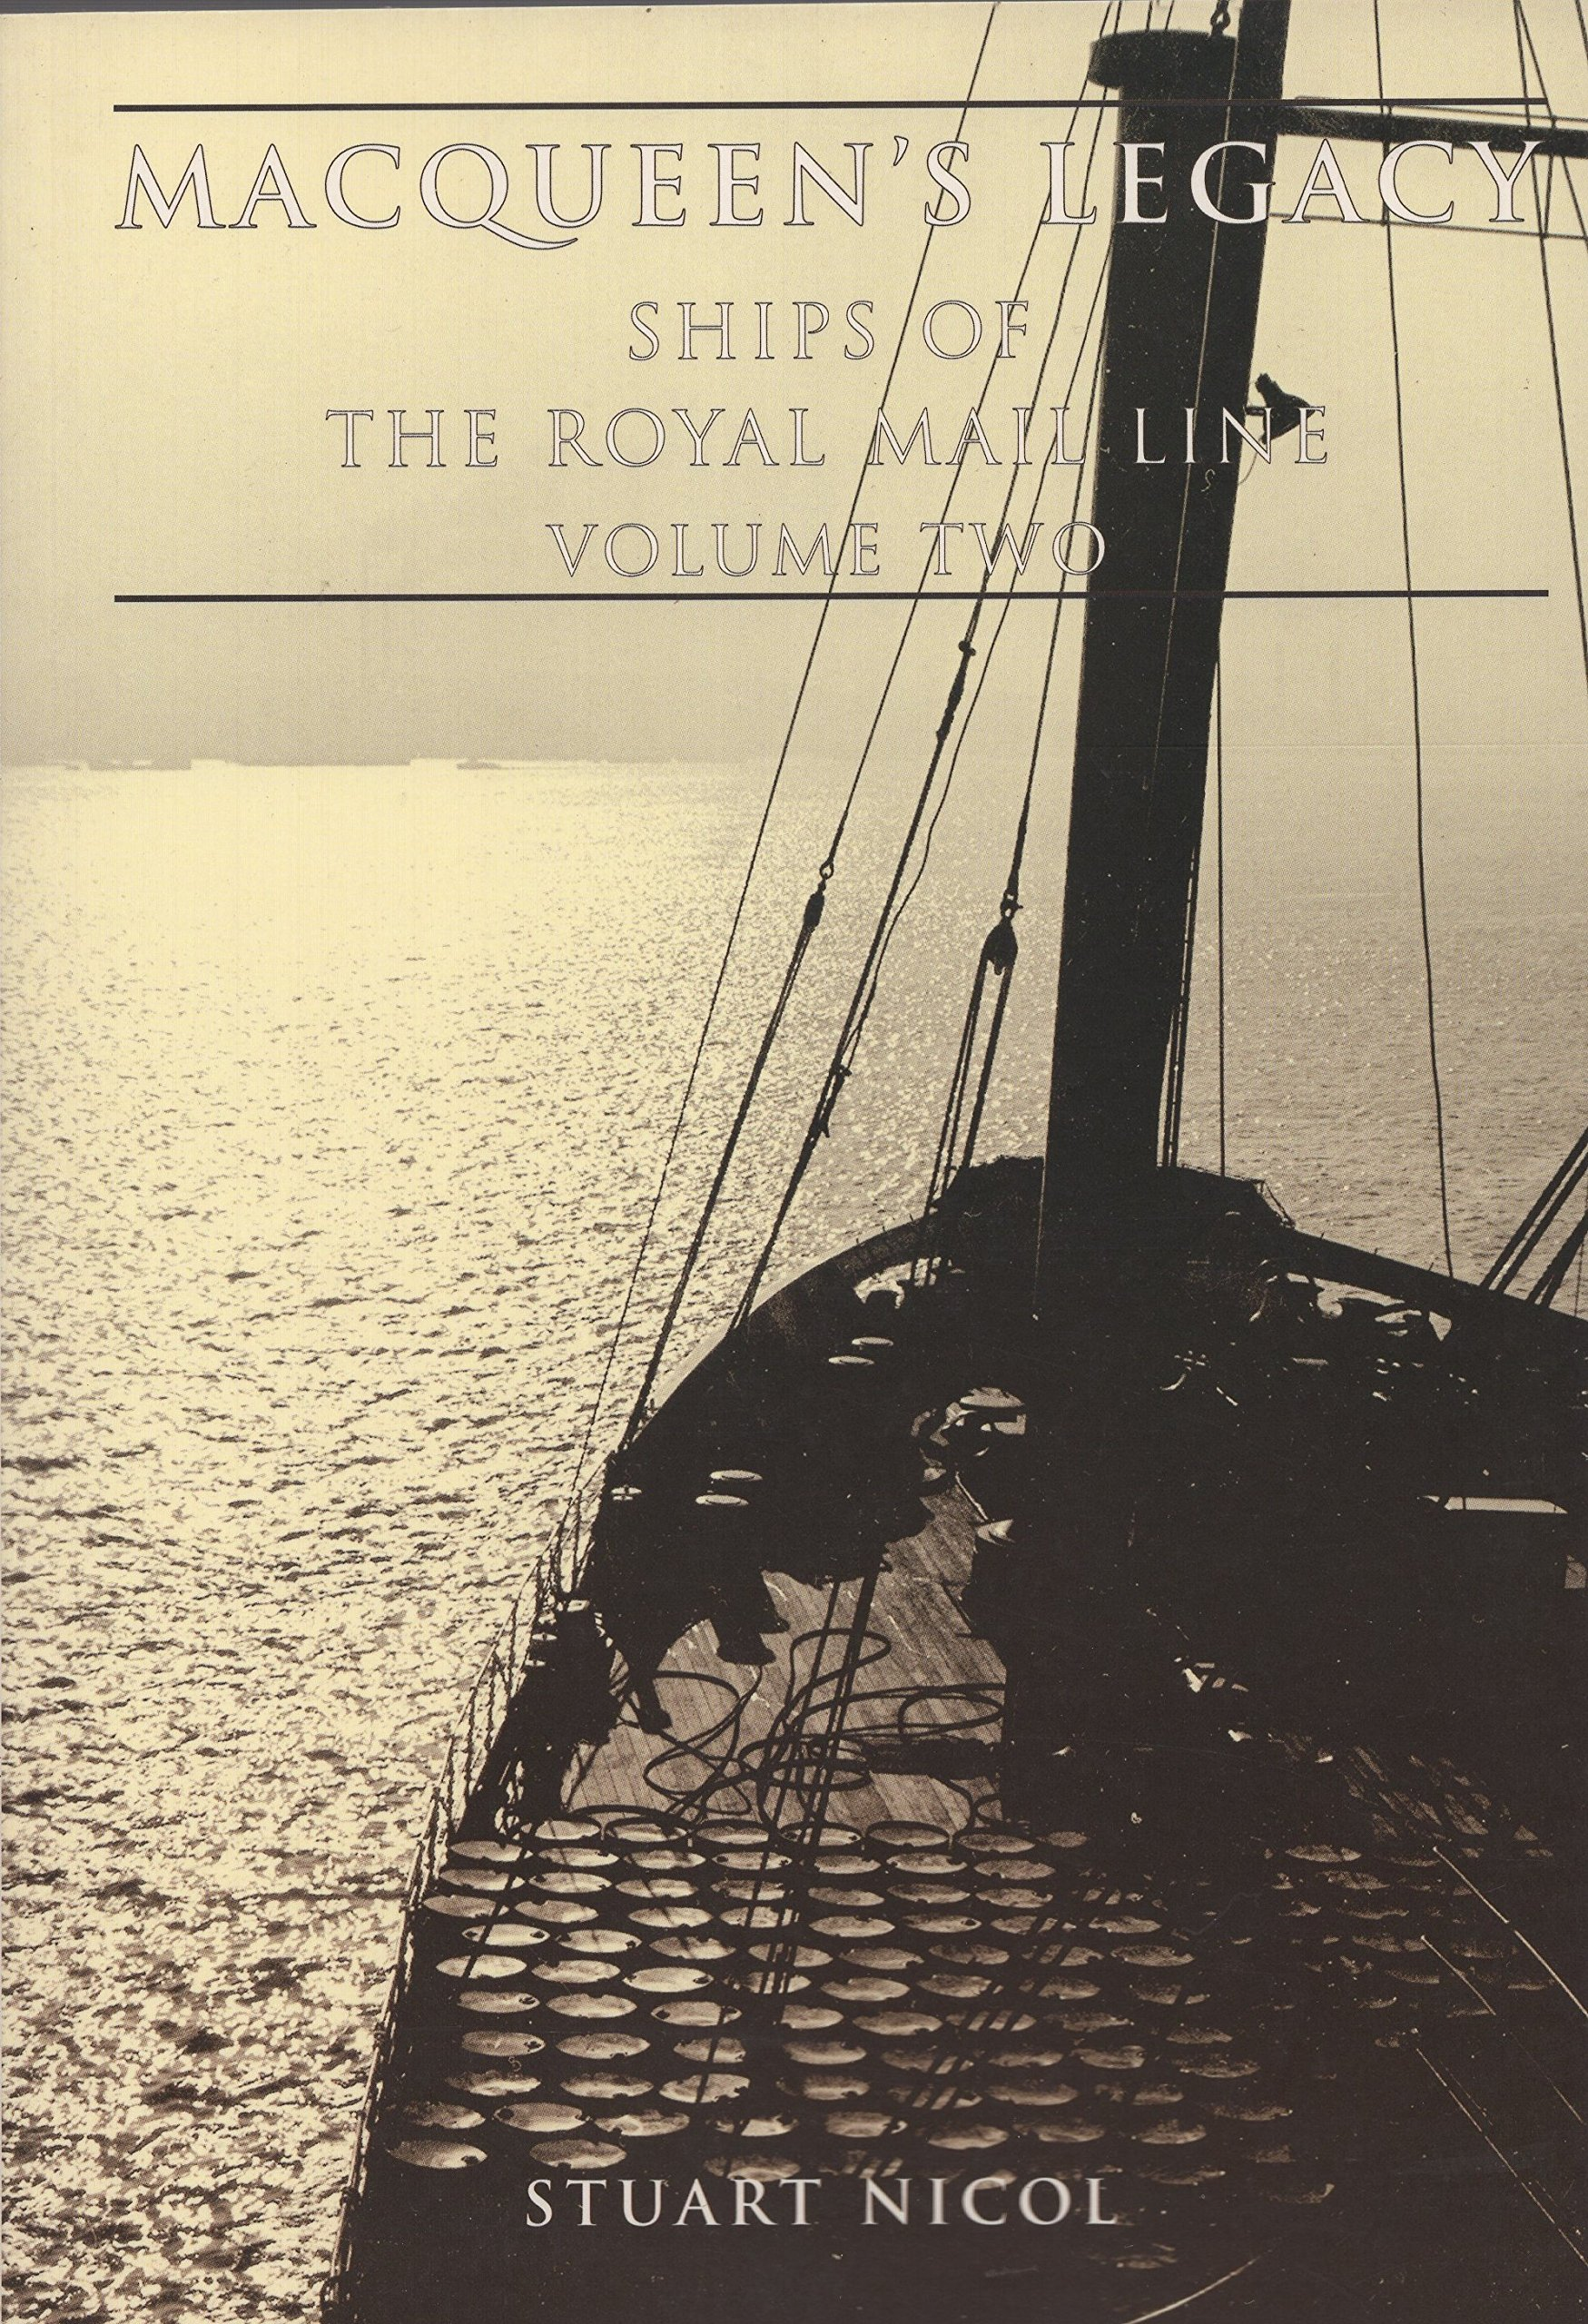 Macqueen's Legacy Volume Two: Ships of the Royal Mail Line pdf